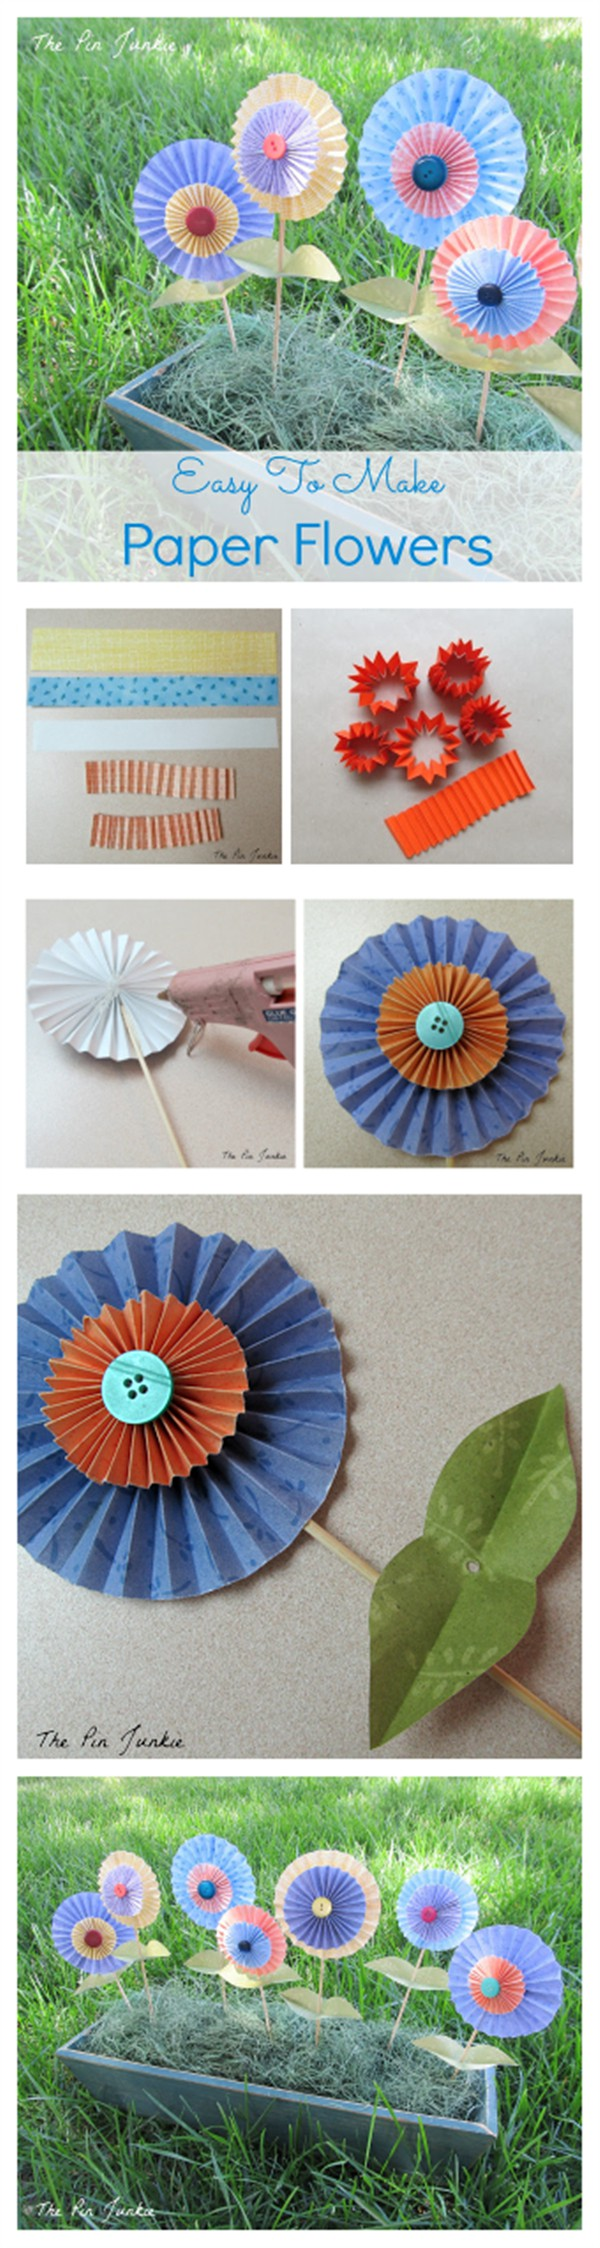 Easy to Make Folded Paper Flowers Tutorial